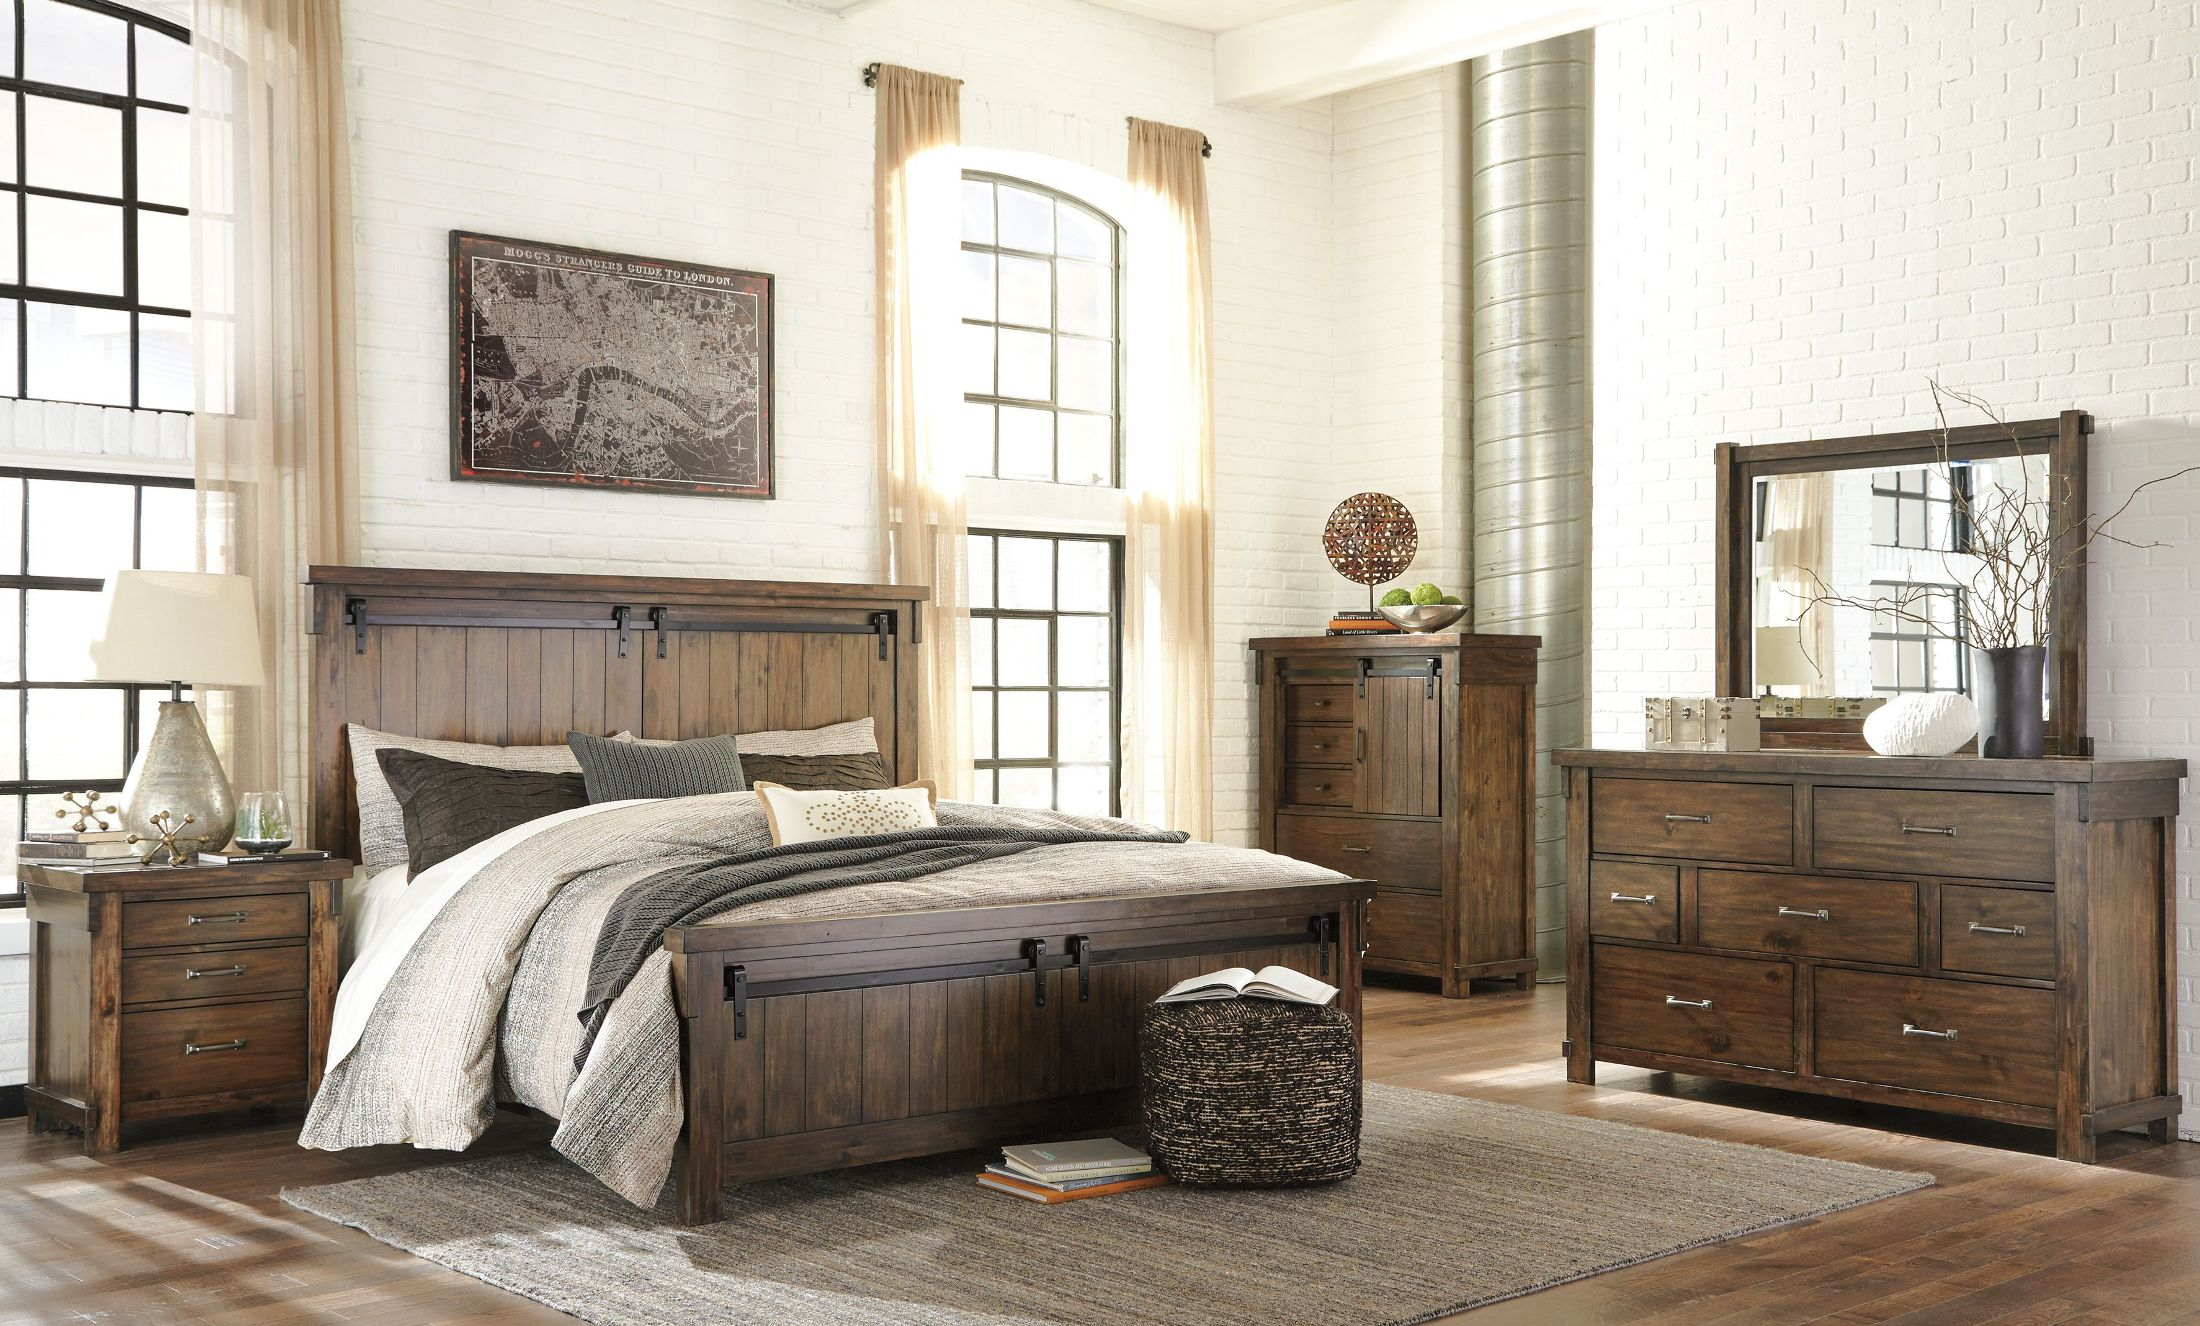 Prime Lakeleigh Brown Panel Bedroom Set Home Interior And Landscaping Spoatsignezvosmurscom